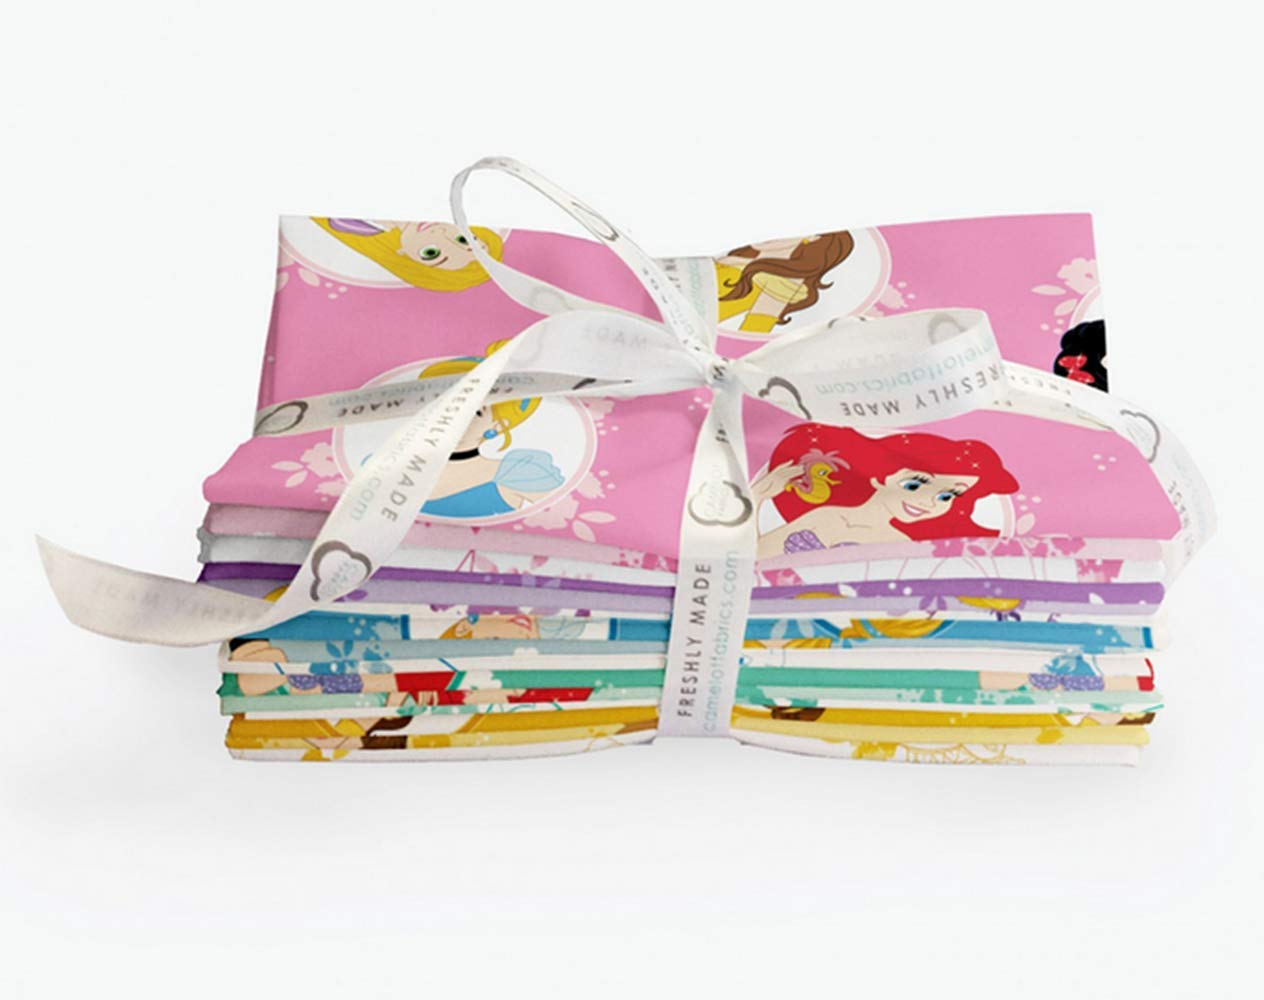 Disney Forever Princess 22 Fat Quarter Bundle by Camelot Fabrics